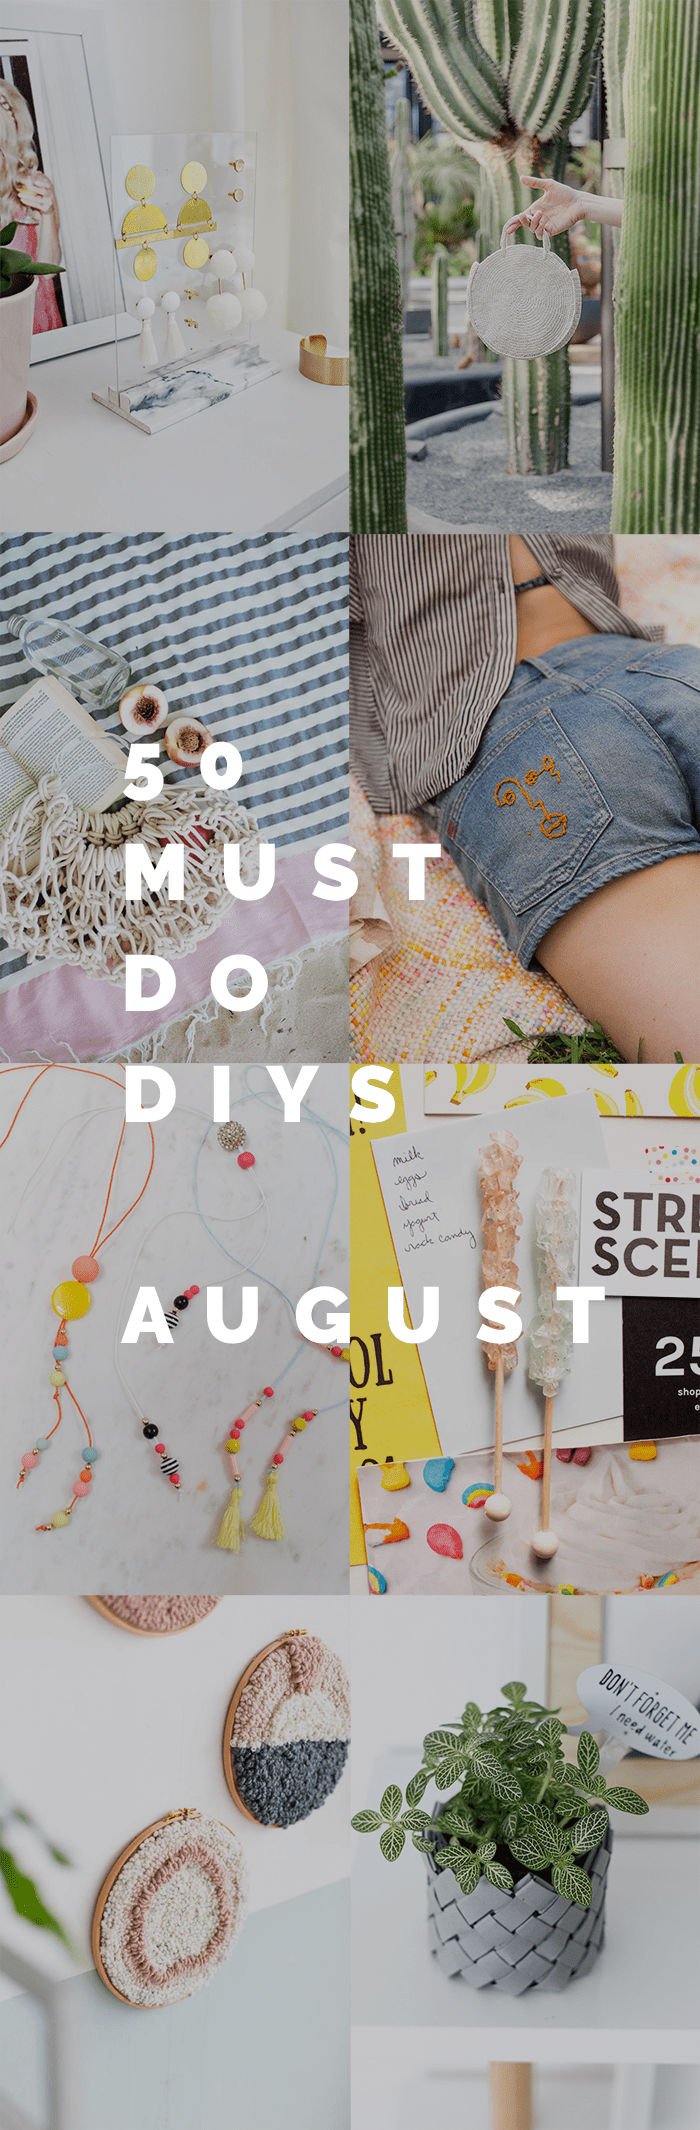 50 Must Do DIY's August